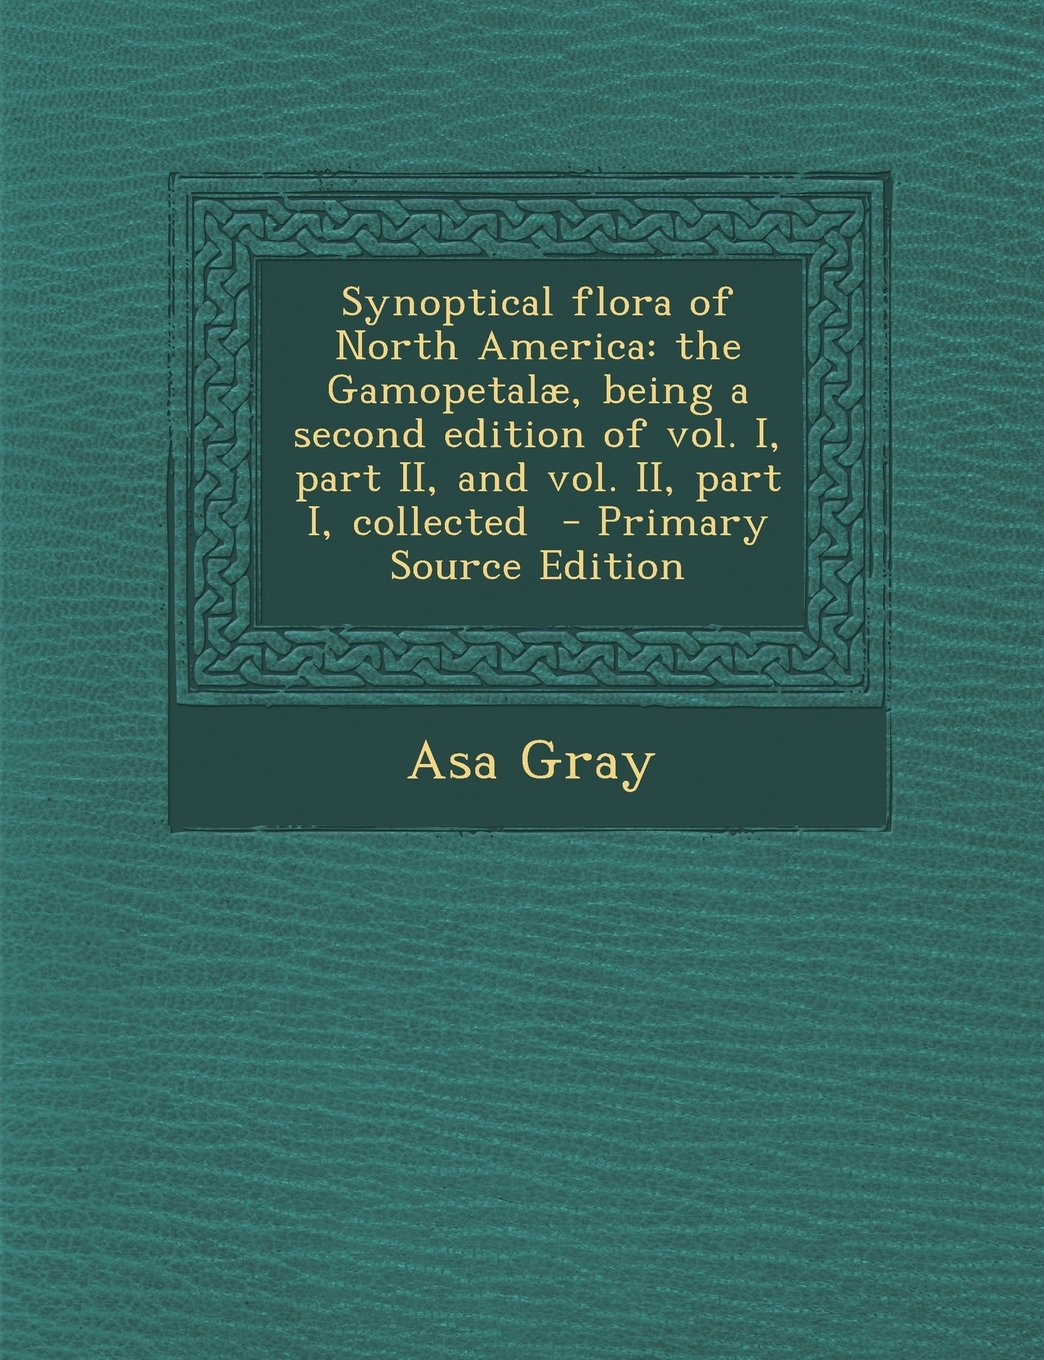 Download Synoptical flora of North America: the Gamopetalæ, being a second edition of vol. I, part II, and vol. II, part I, collected pdf epub